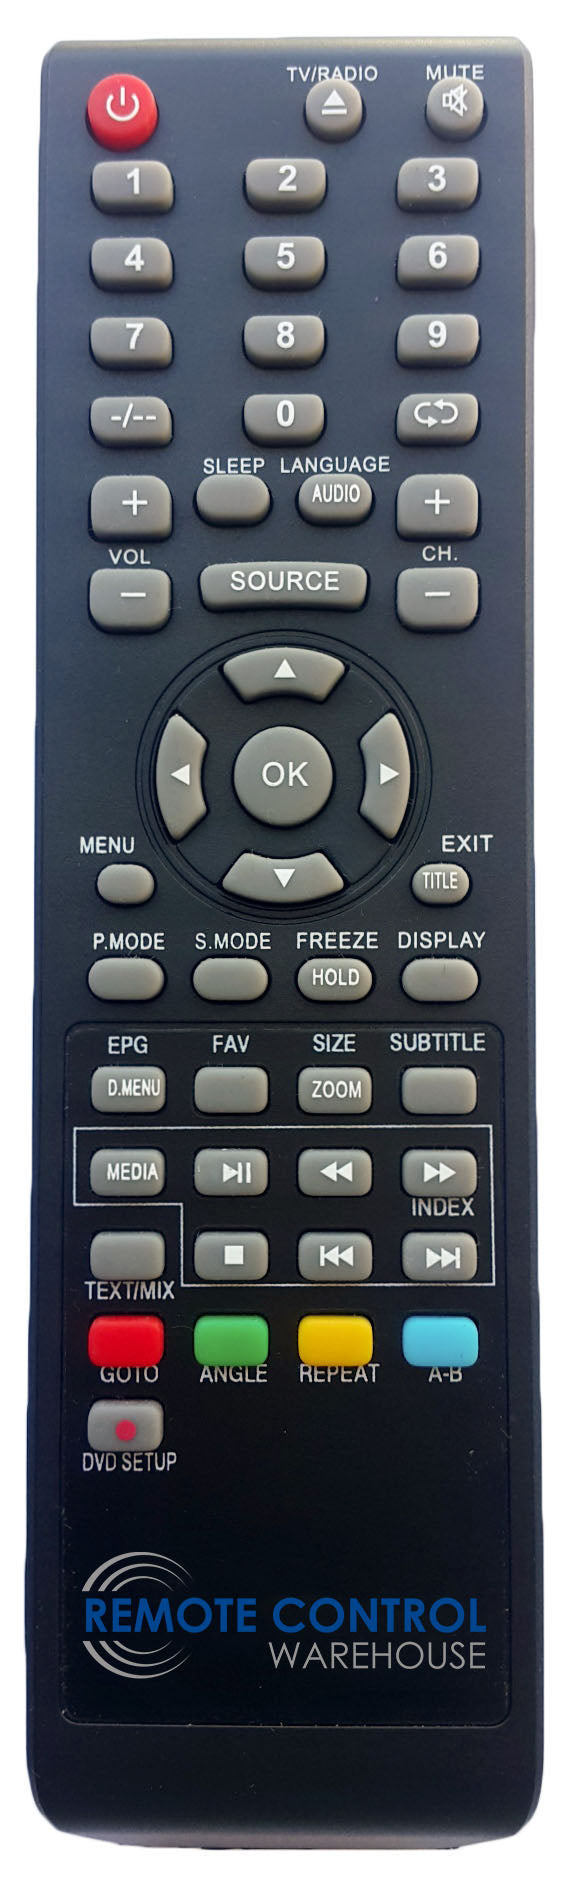 AKAI REPLACEMENT REMOTE CONTROL - AK6520UHD  AK-6520UHD  LED TV - Remote Control Warehouse